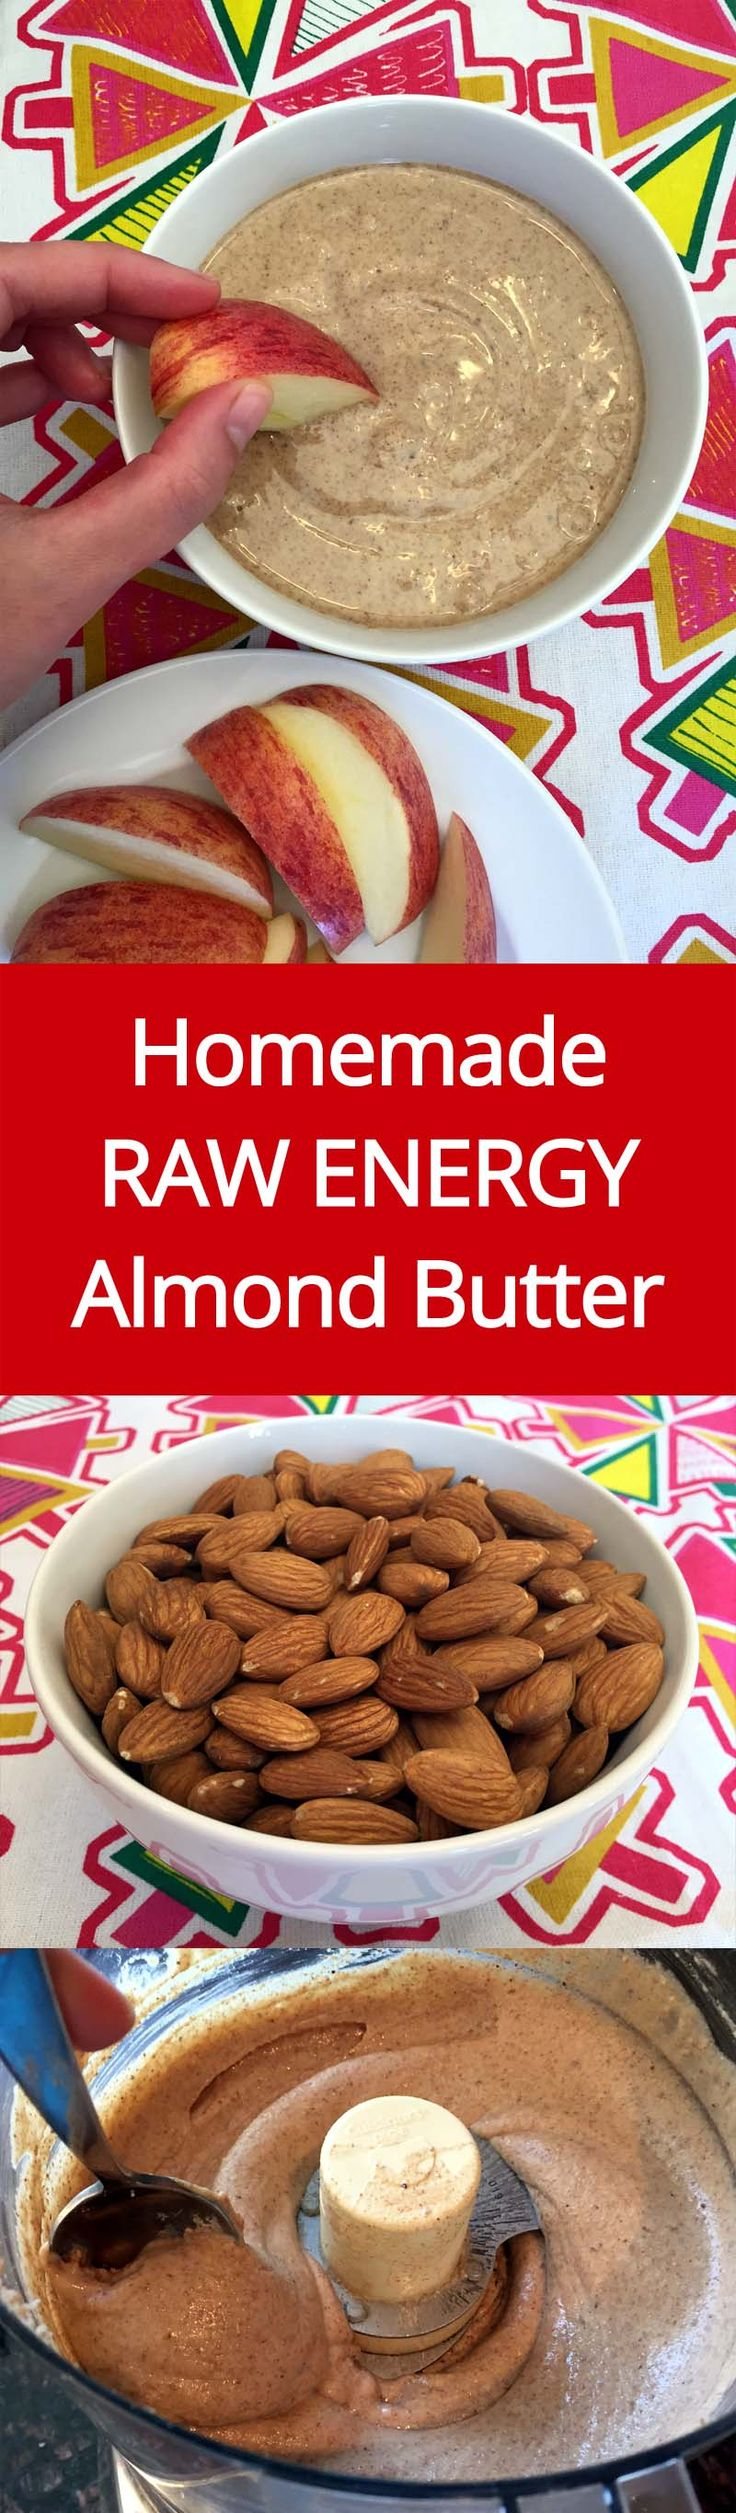 How To Make Raw Organic Almond Butter